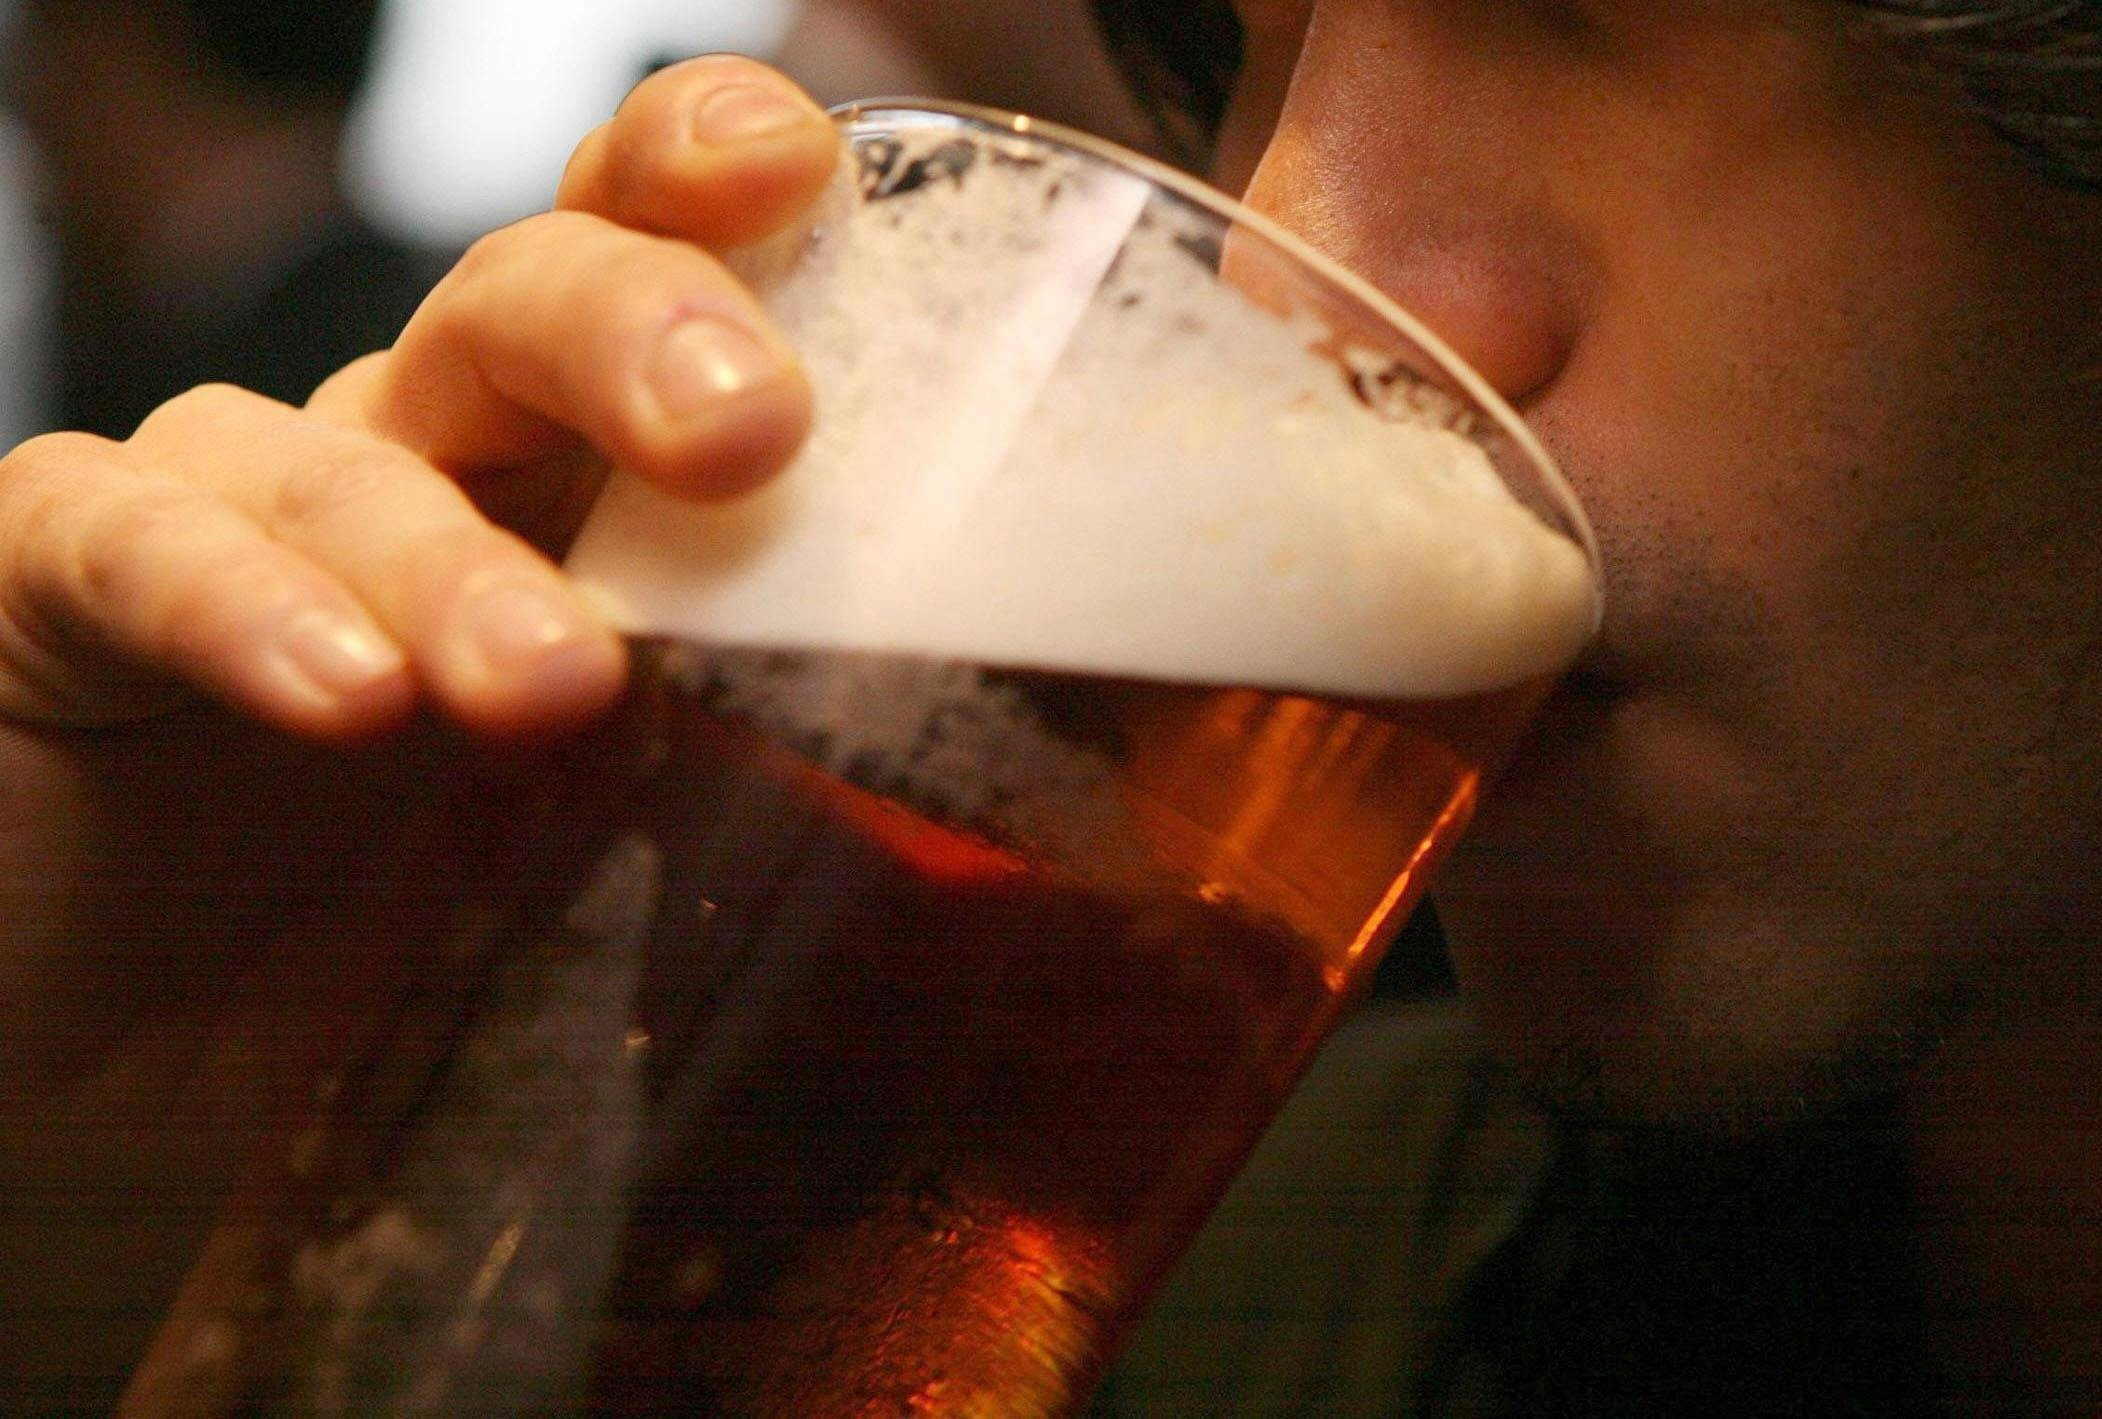 Most Brits think pubs charge too much for a pint of beer